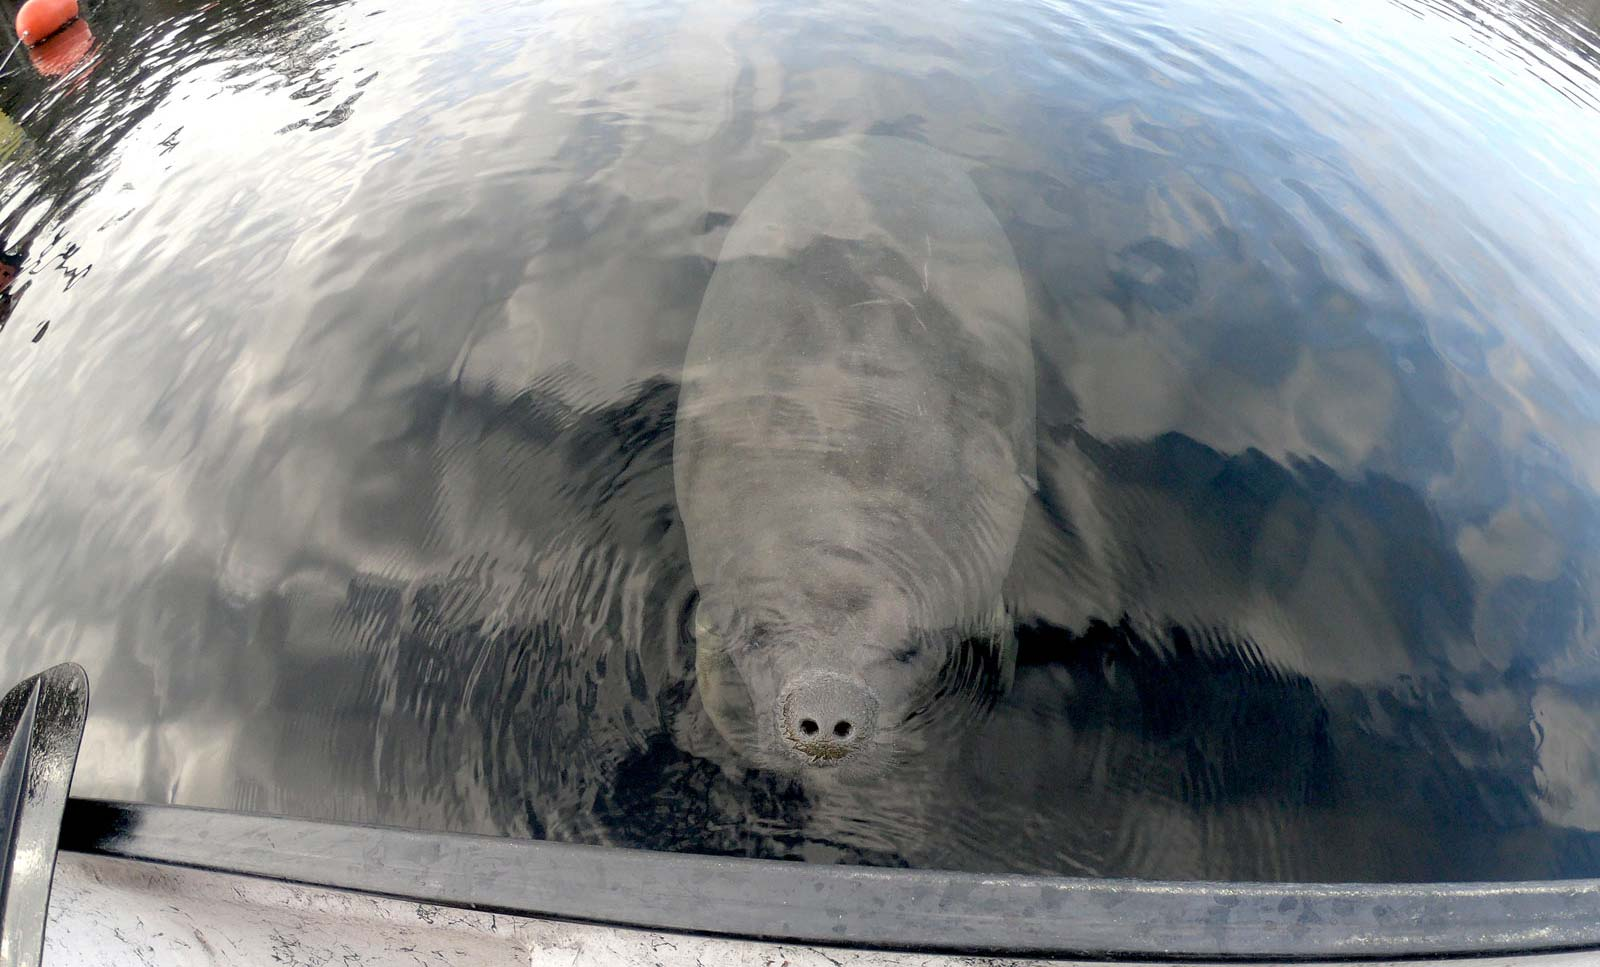 Manatee at Blue Spring State Park looking at paddler